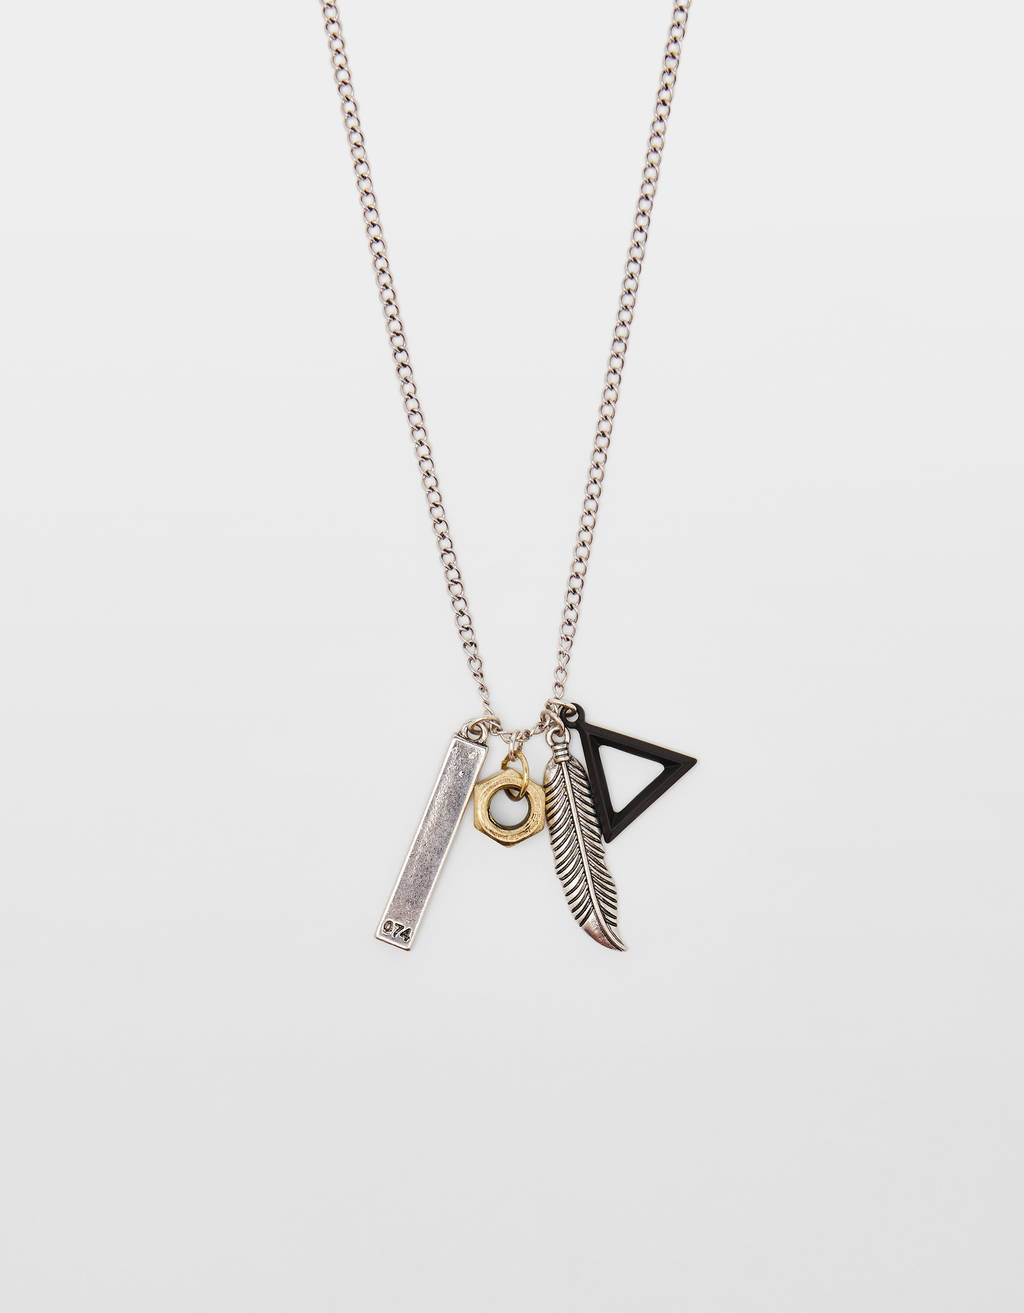 Necklace with geometric pendants